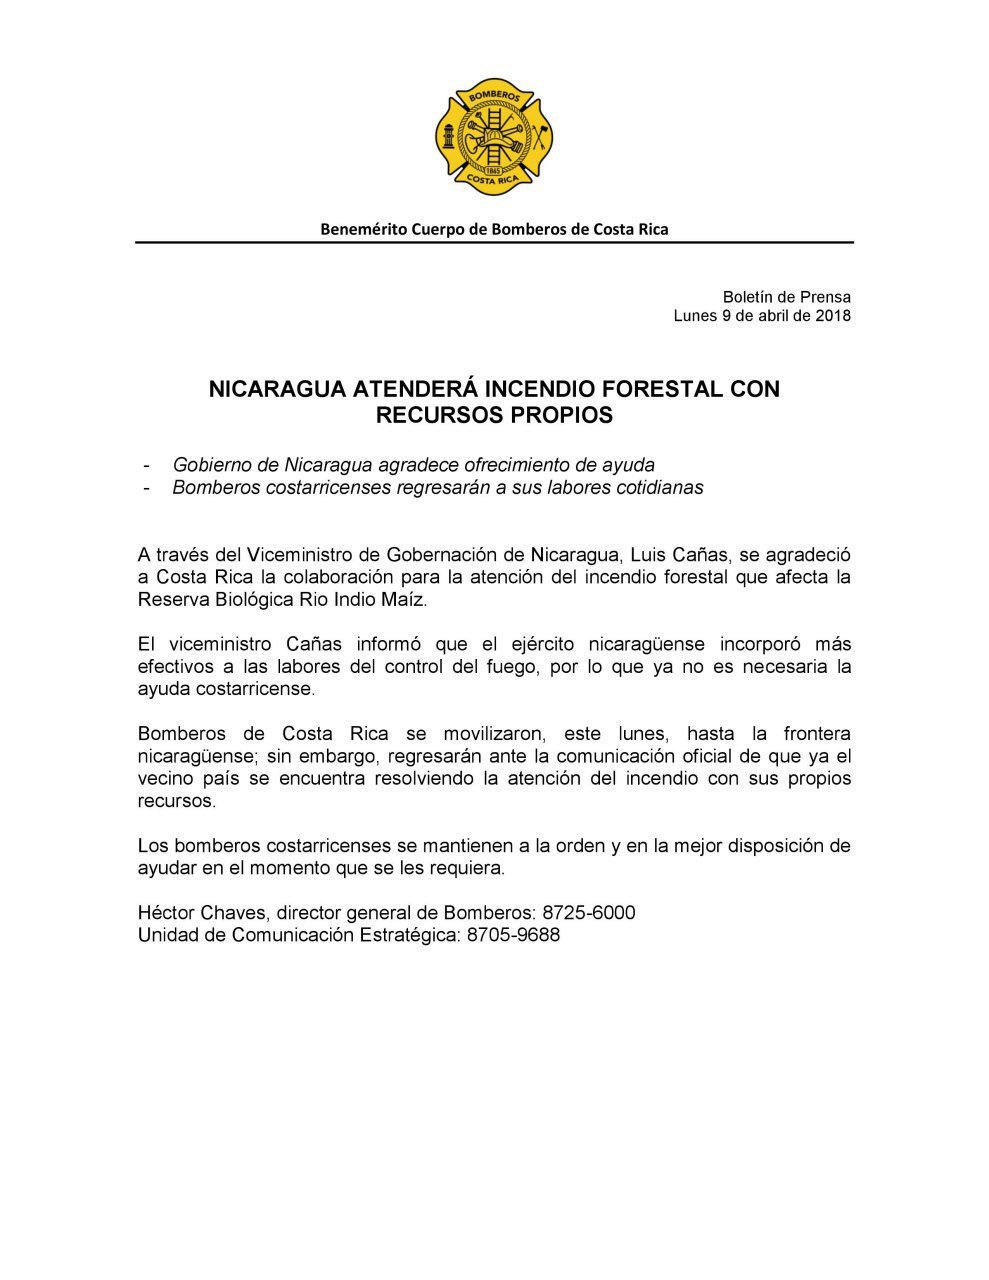 Government refuses aid from Costa Rica